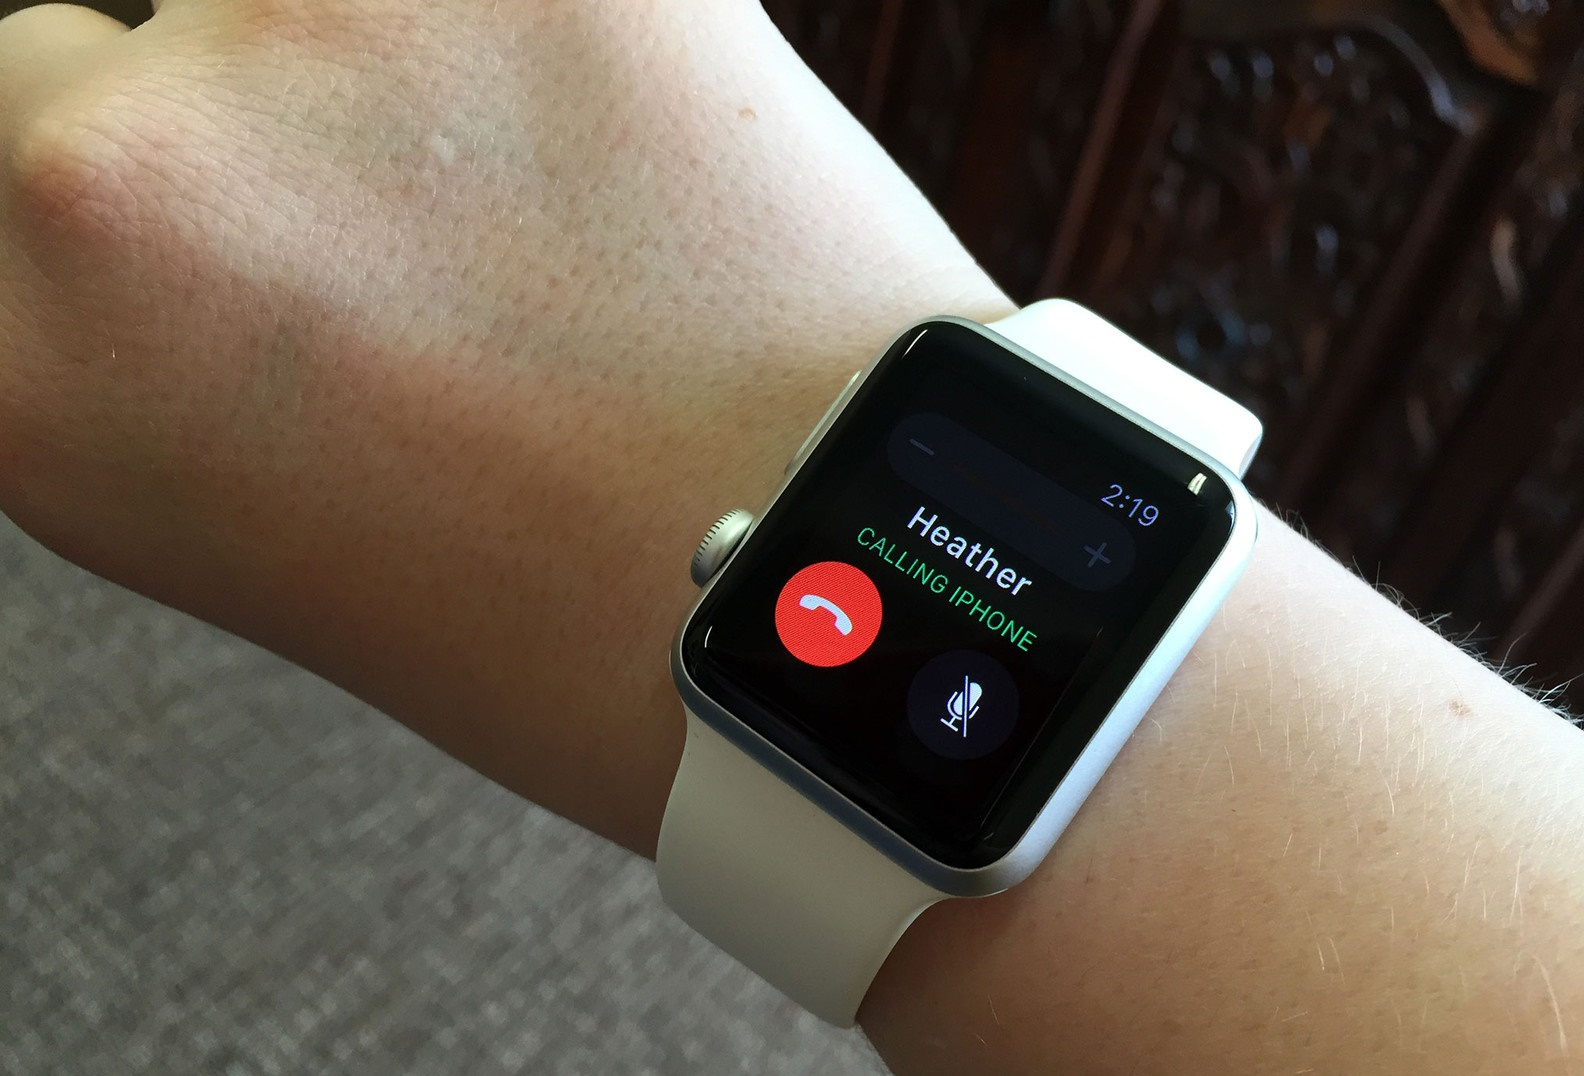 How to make Phone call from Apple Watch